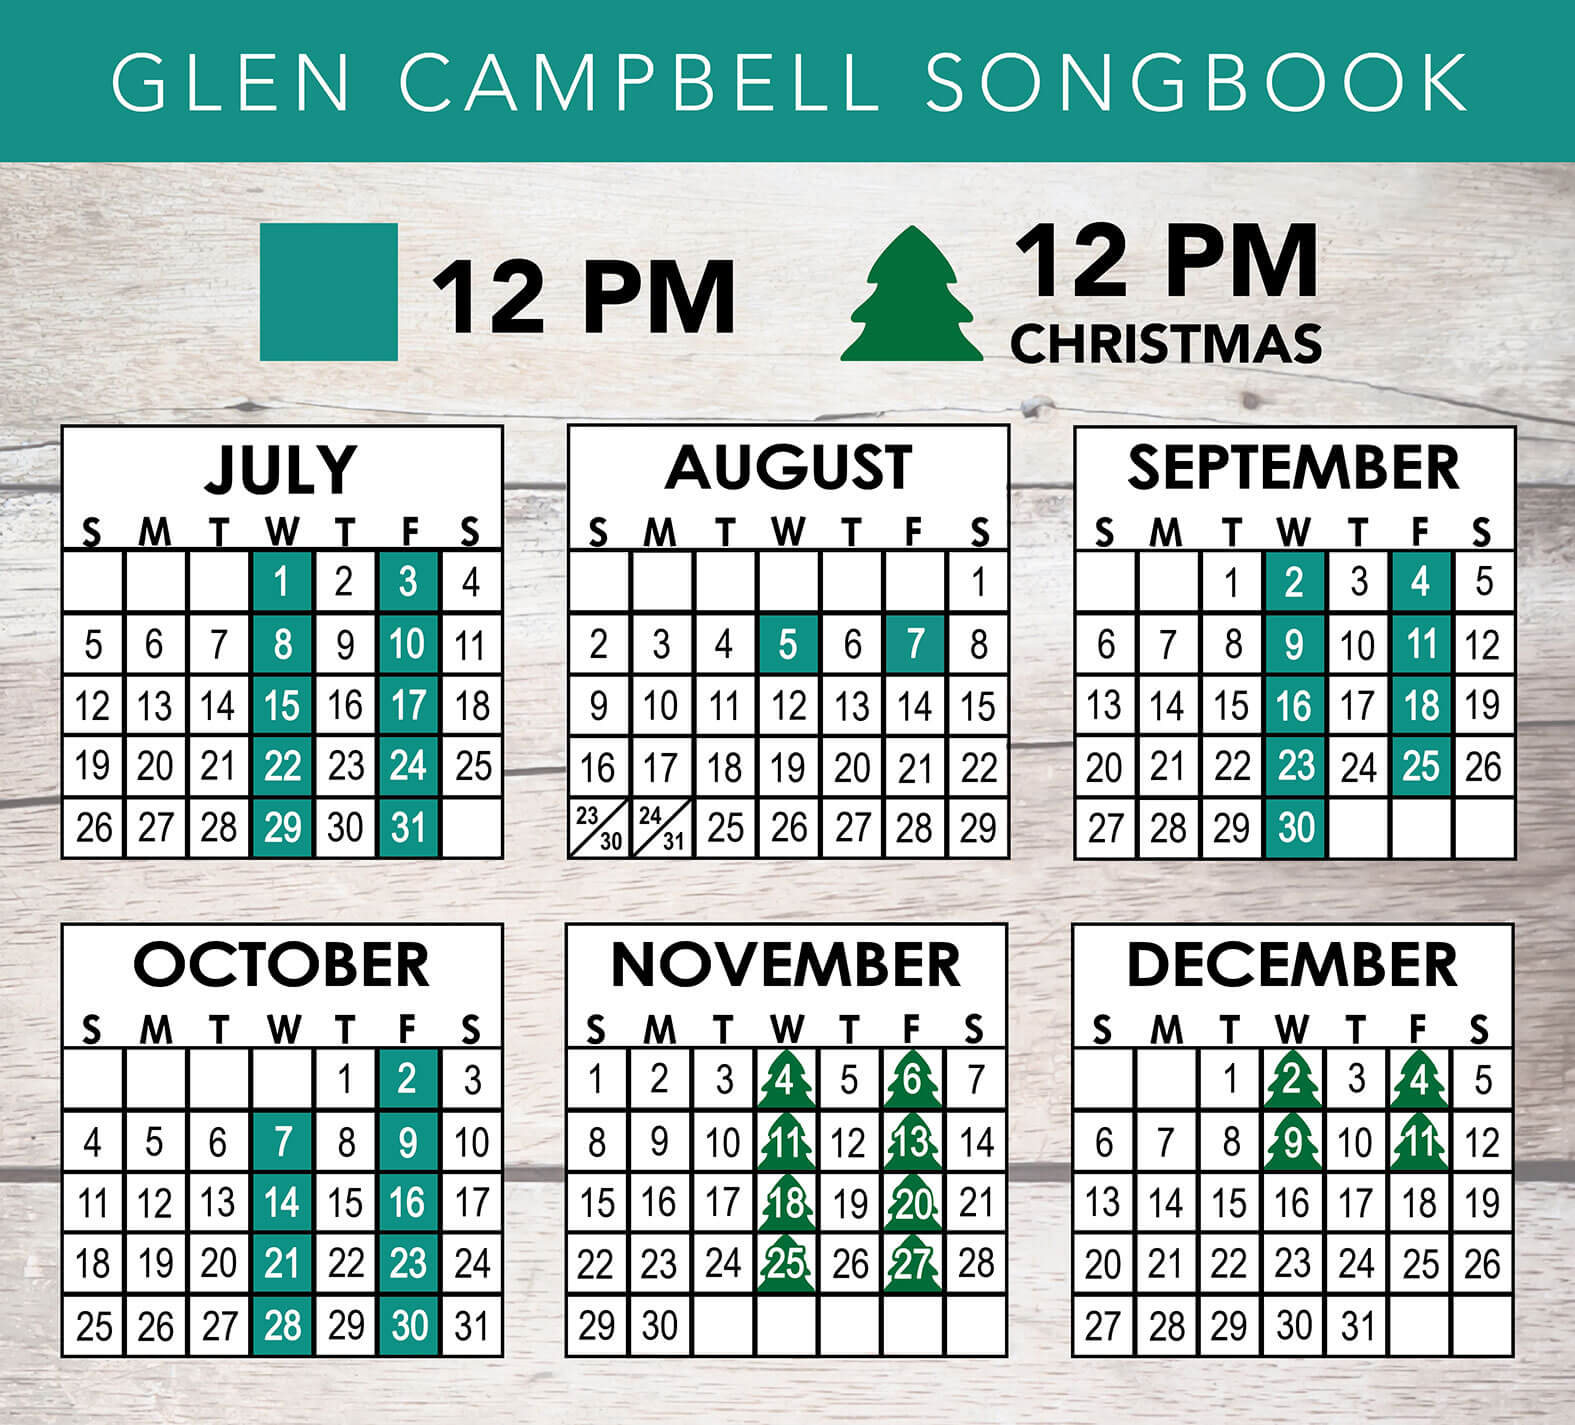 Glen Campbell Songbook 2020 Schedule